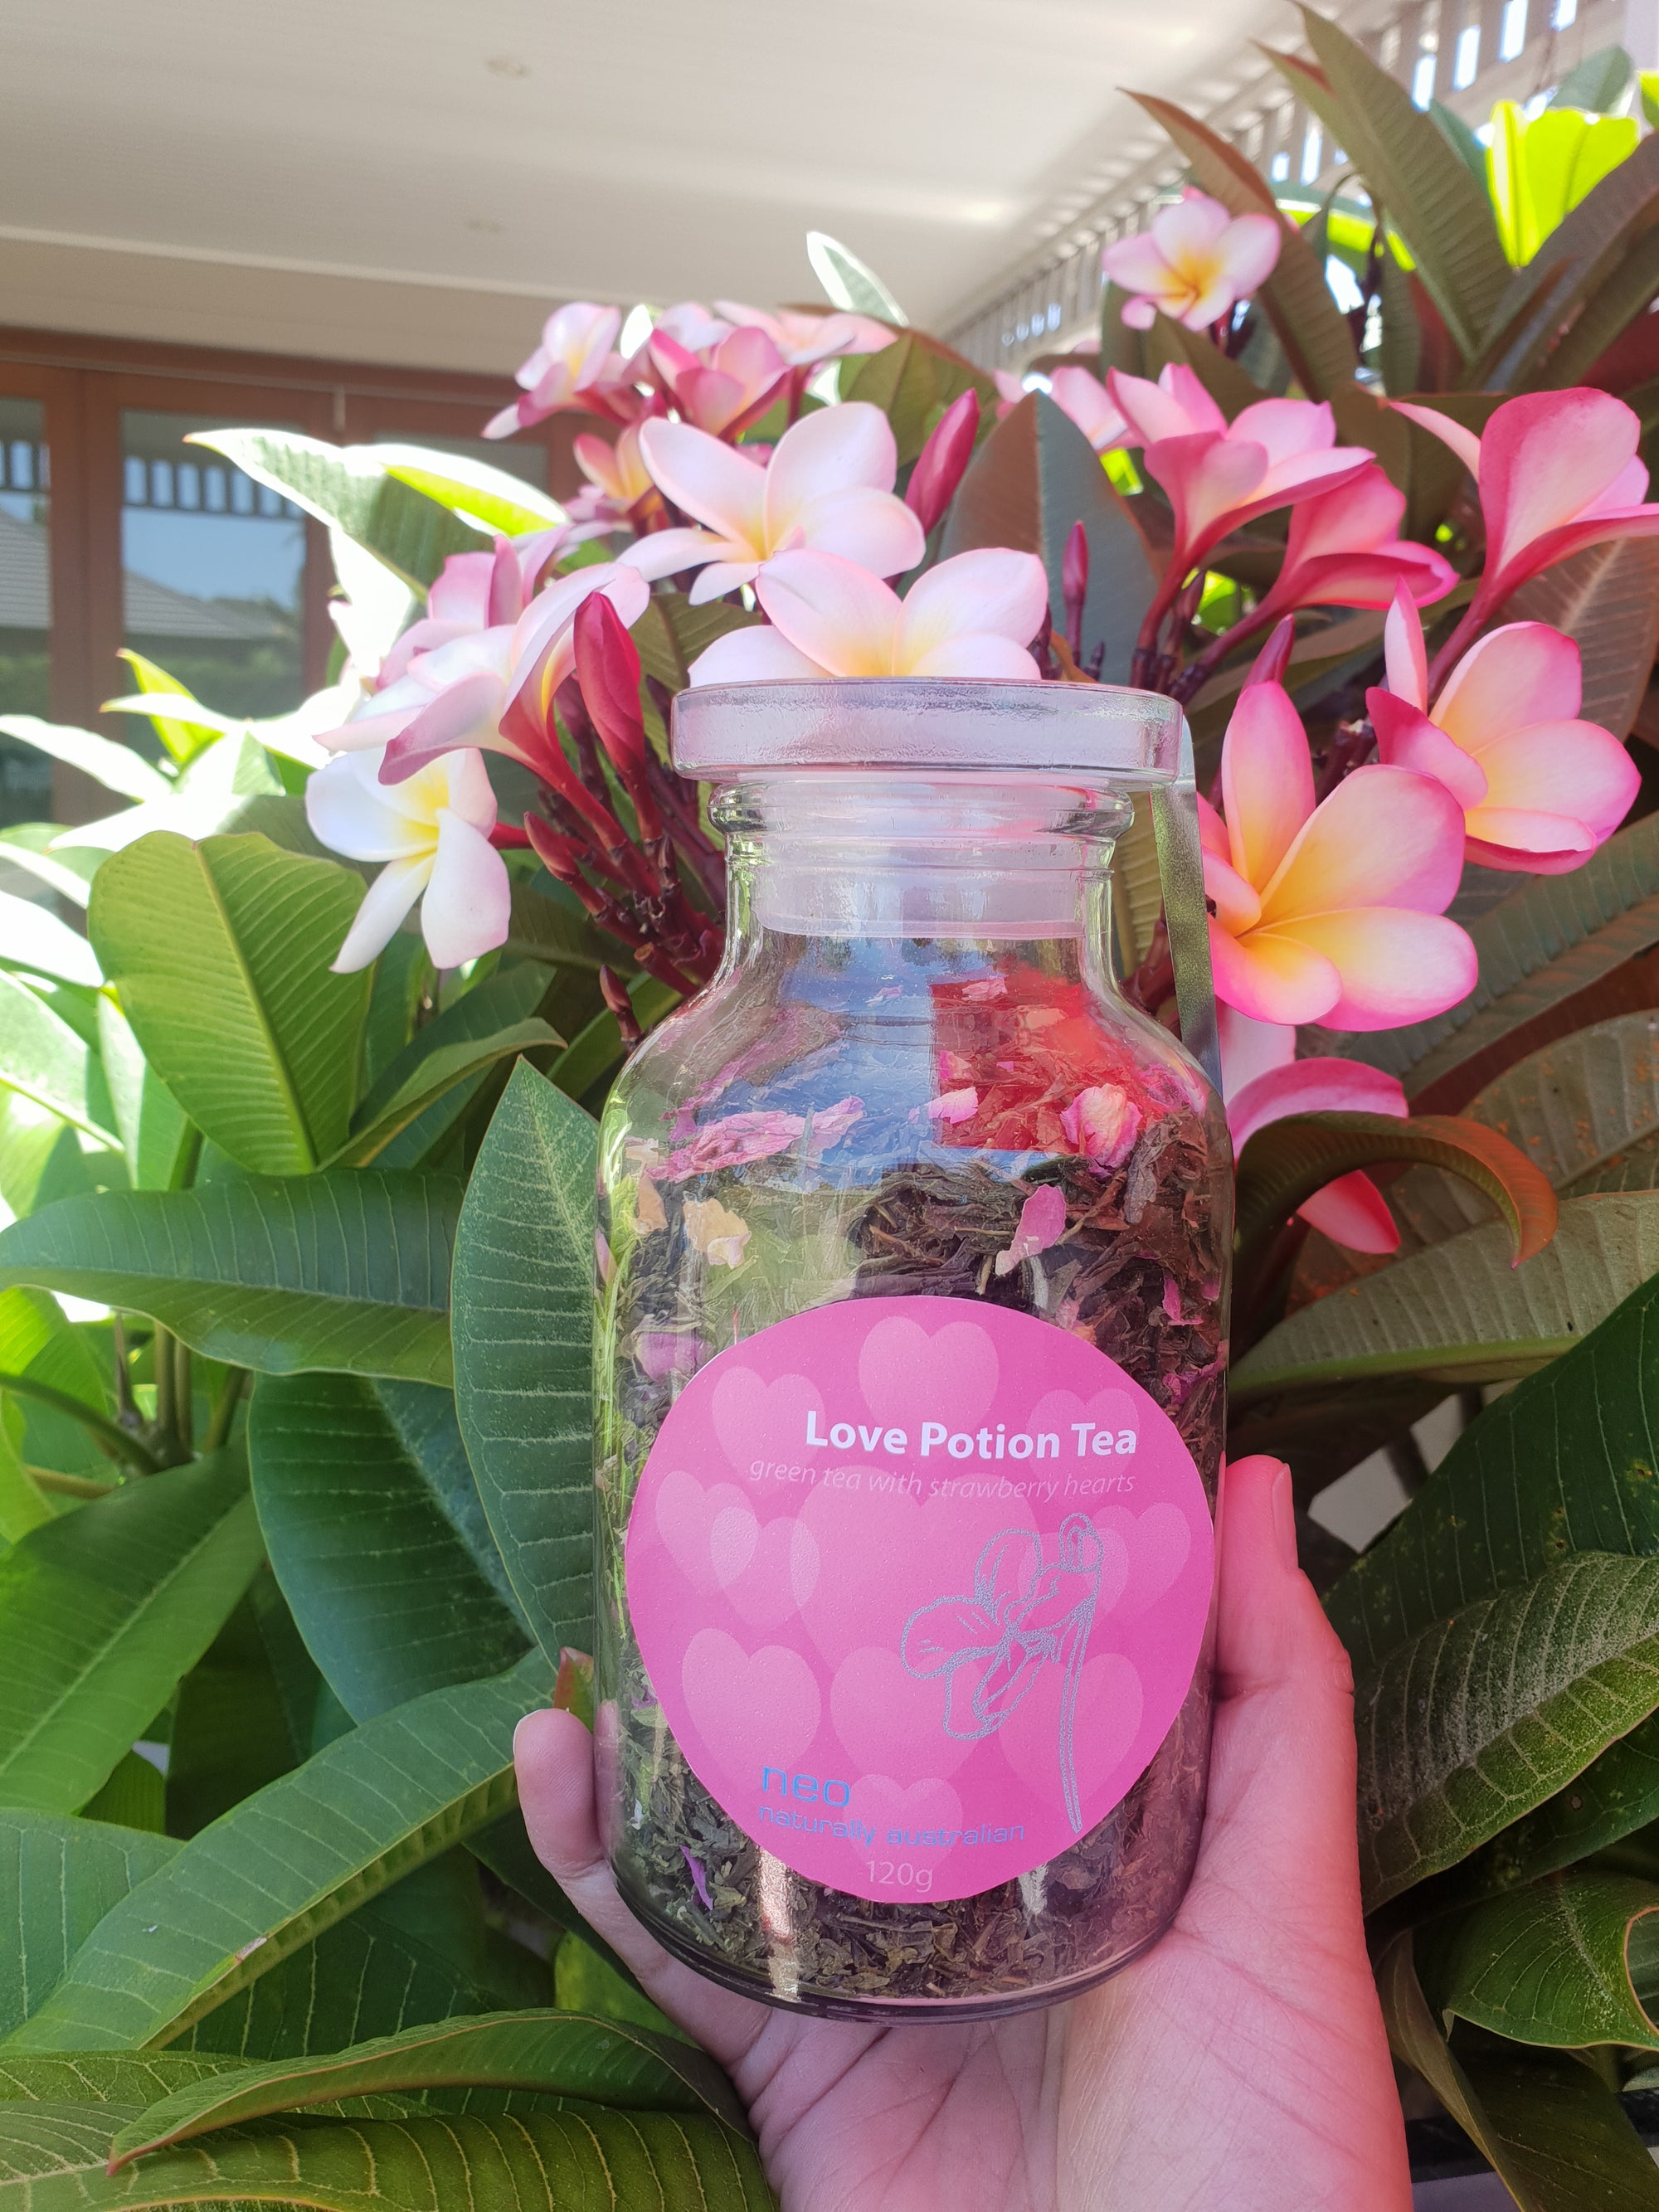 Love Potion Infusion Jar 120g